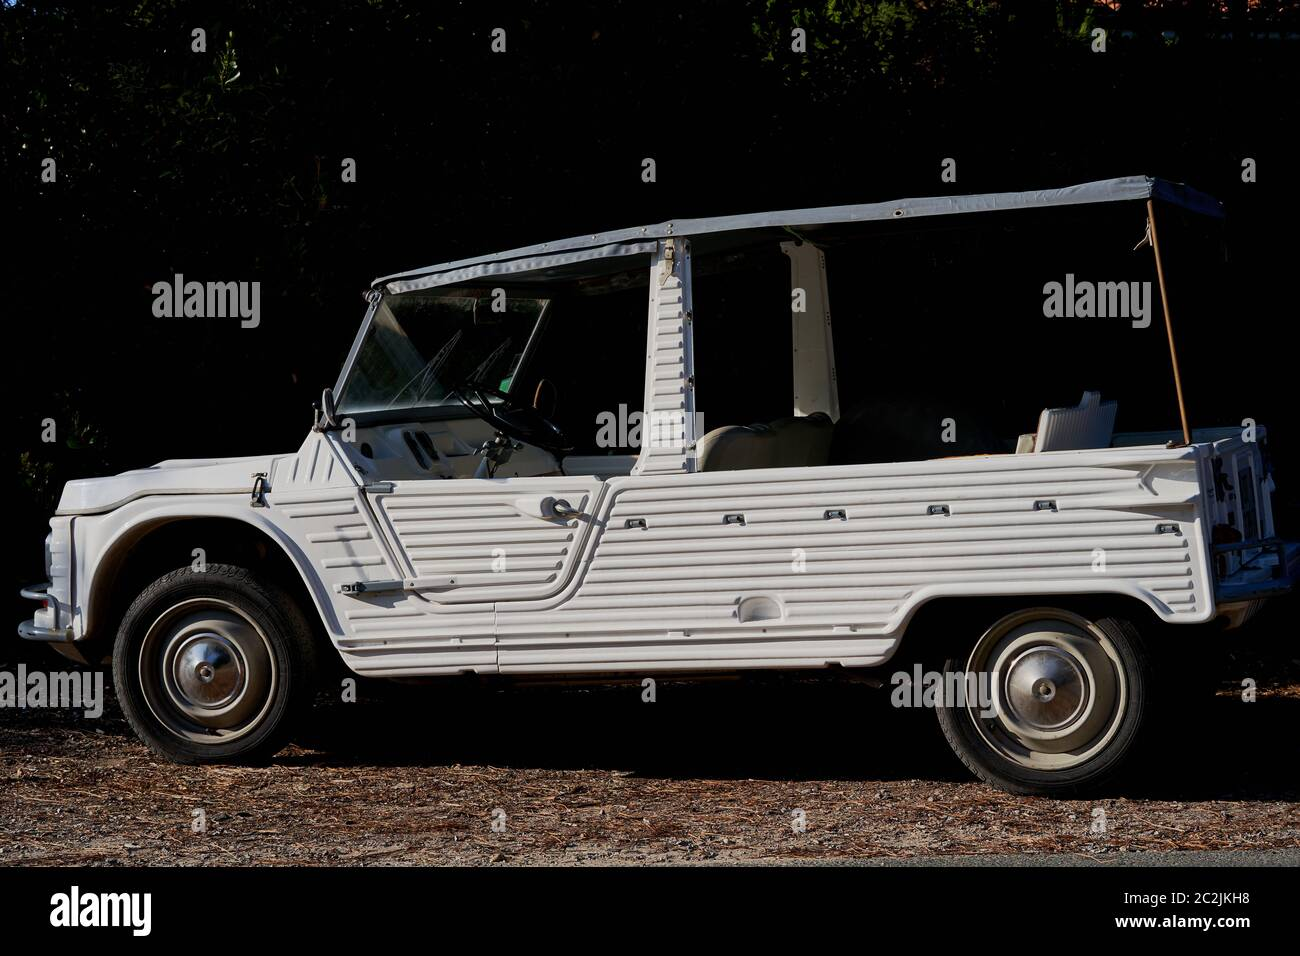 a-jeep-style-vehicle-for-outdoor-beach-u